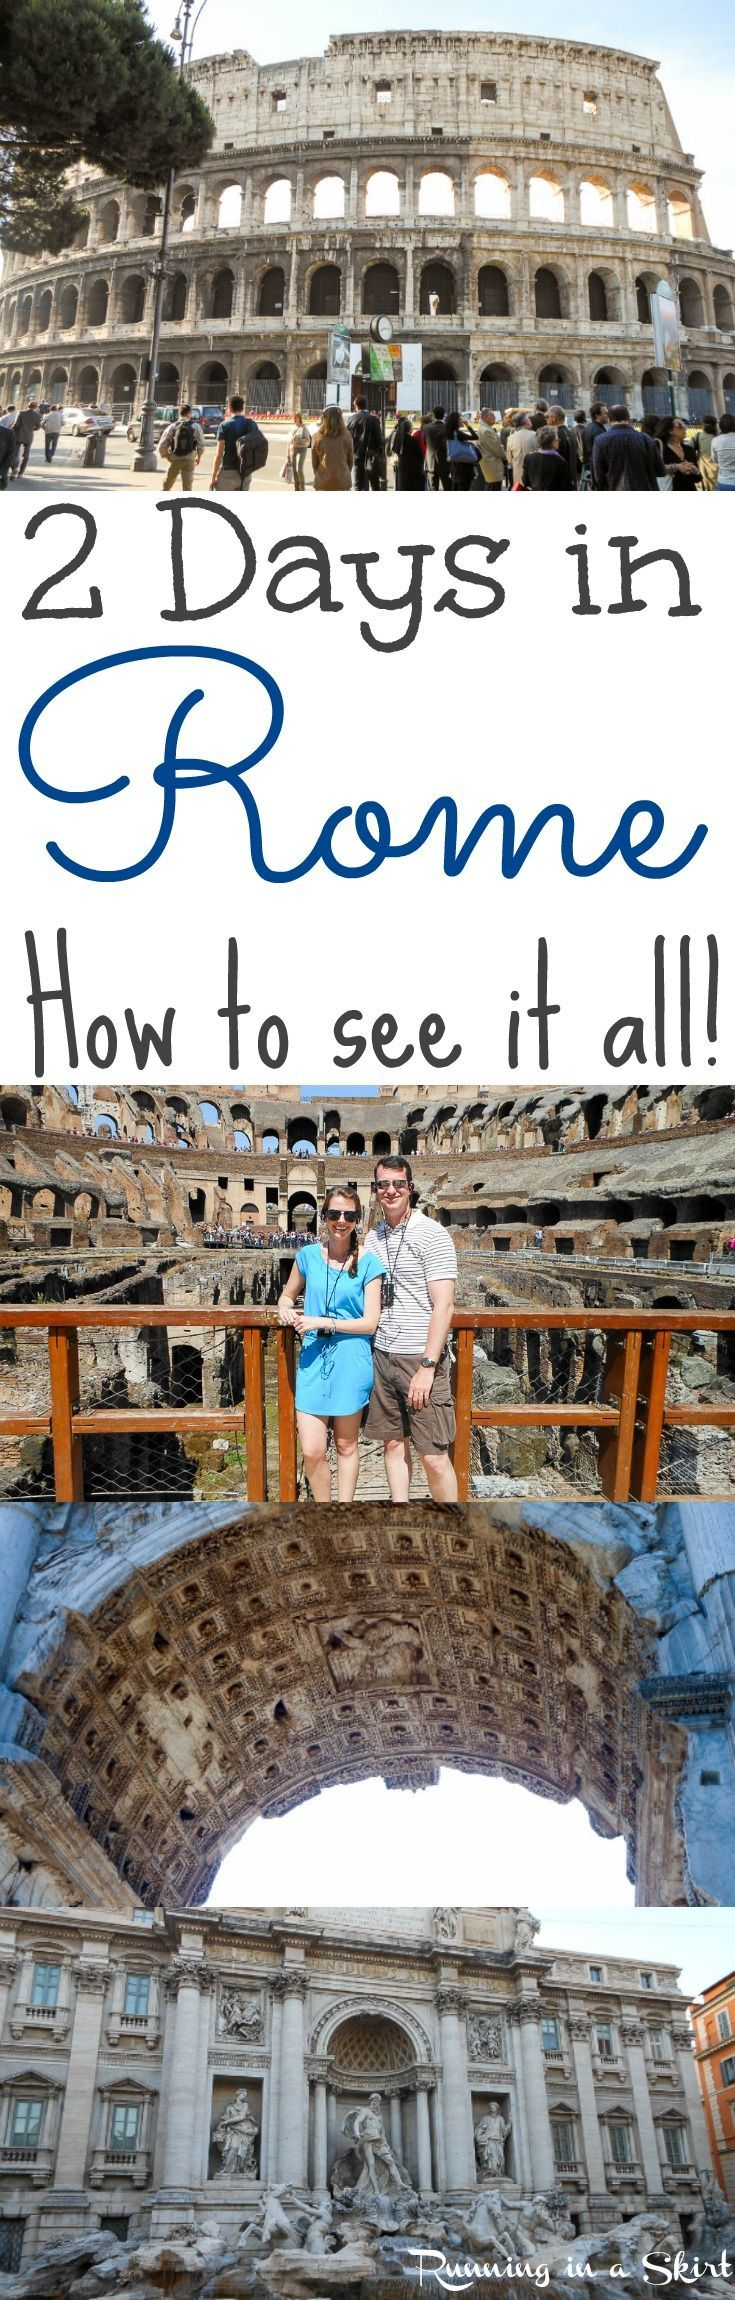 2 Days in Rome, Italy... what to see, do and eat! Great travel advice and tips to maximize your time in two days.  Beautiful places and things to do in a short adventure.  A bucket lists European destination. / Running in a Skirt